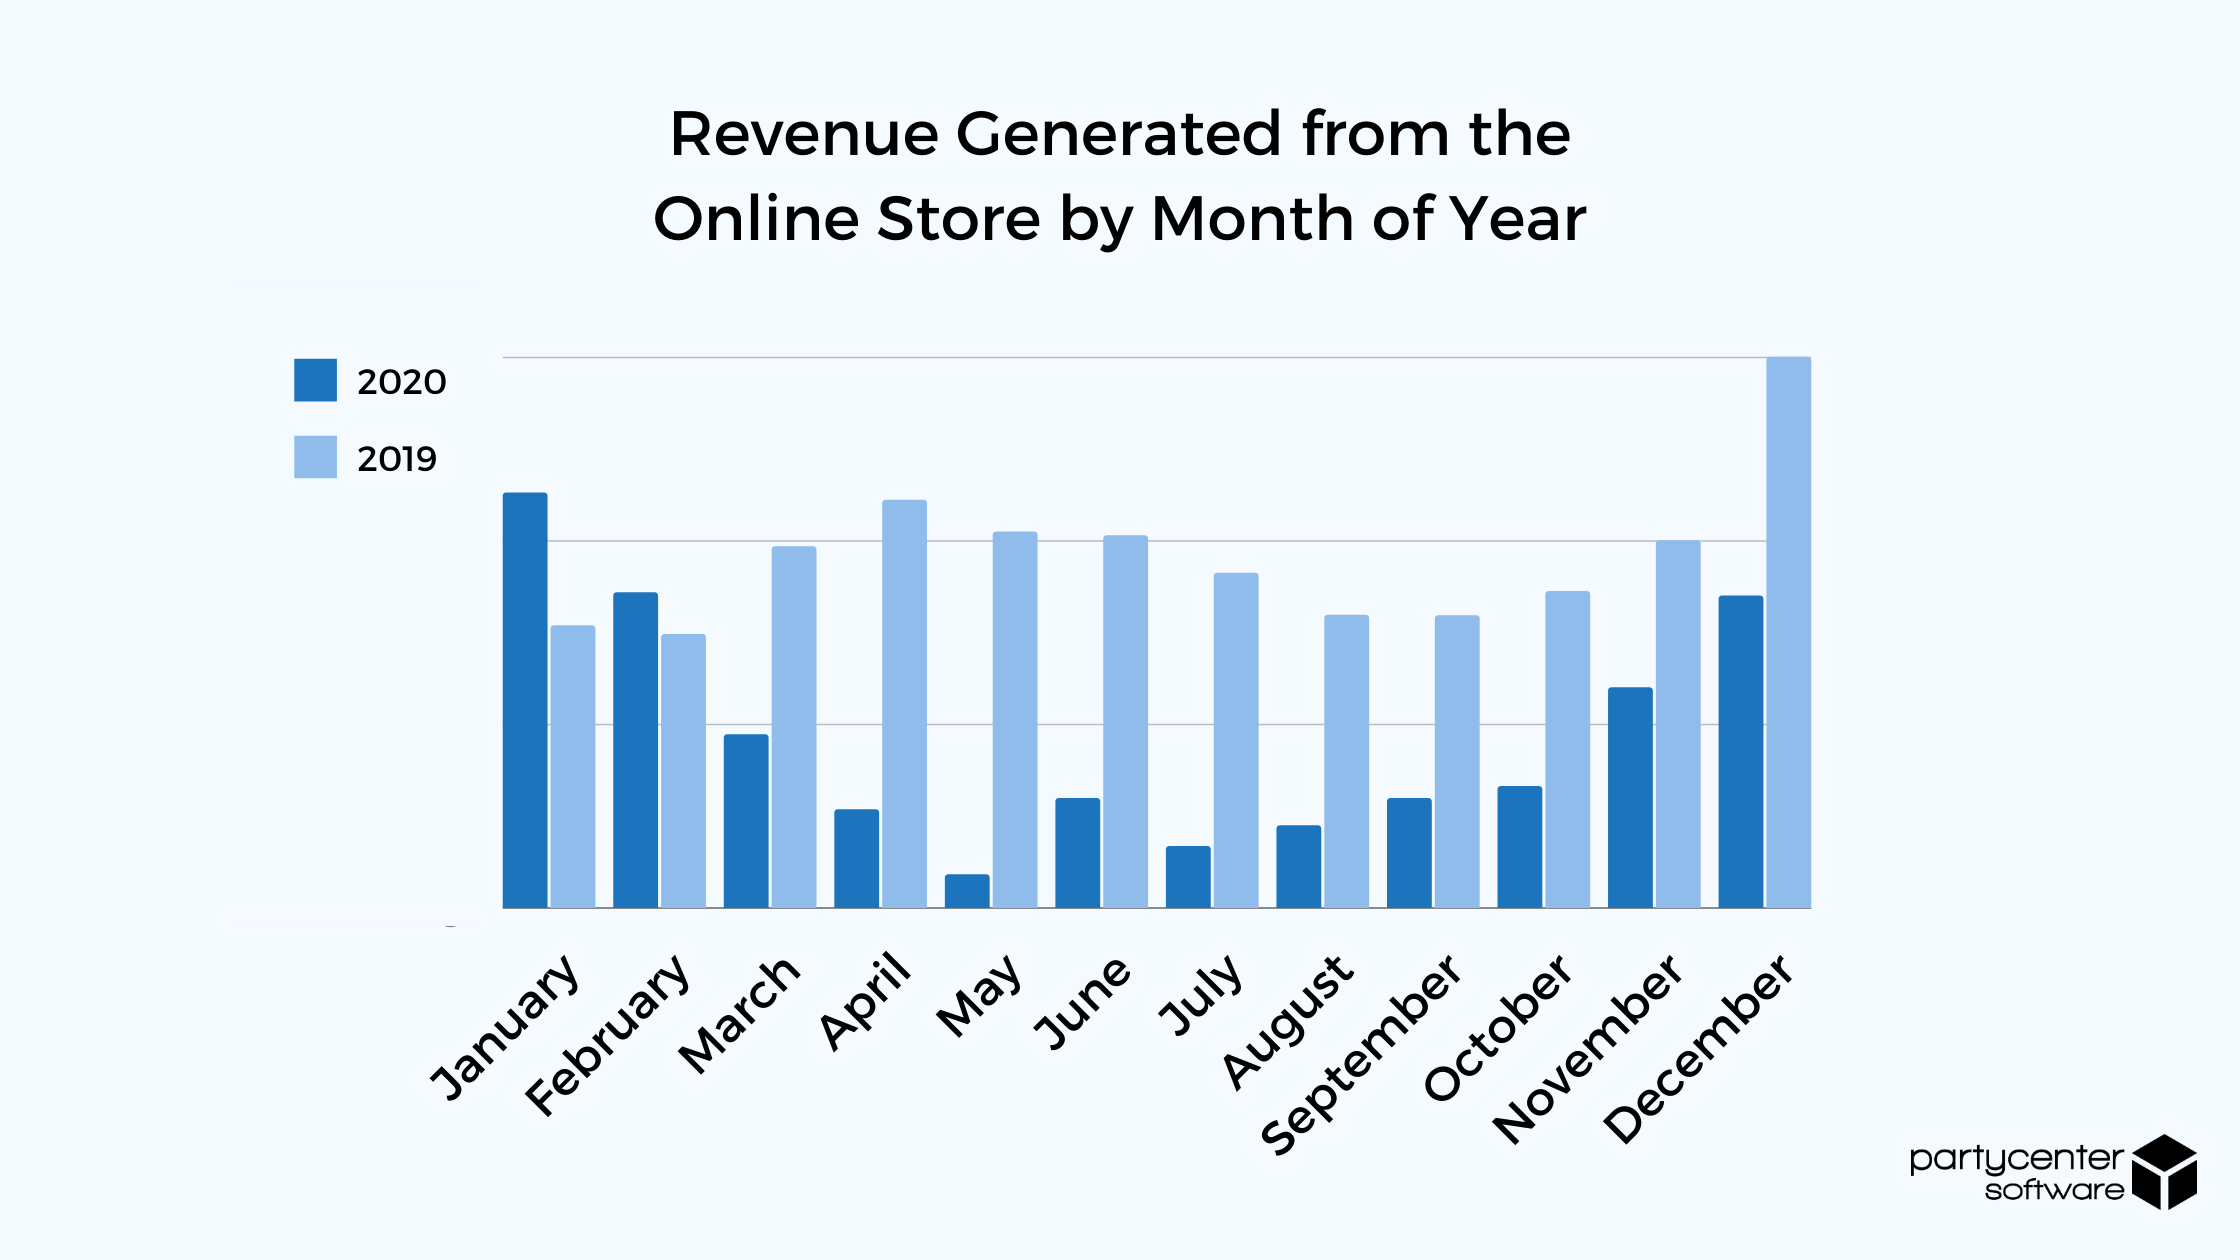 Revenue Generated by Online Store 2020